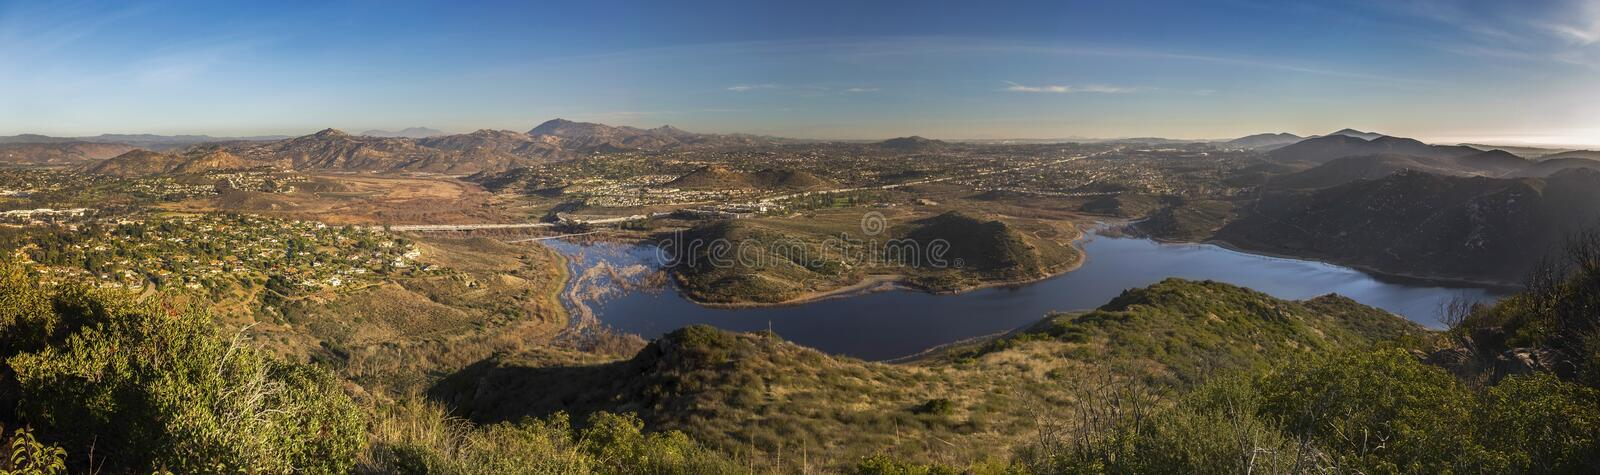 Lac panoramique large Hodges Bernardo Mountain San Diego County landscape photographie stock libre de droits